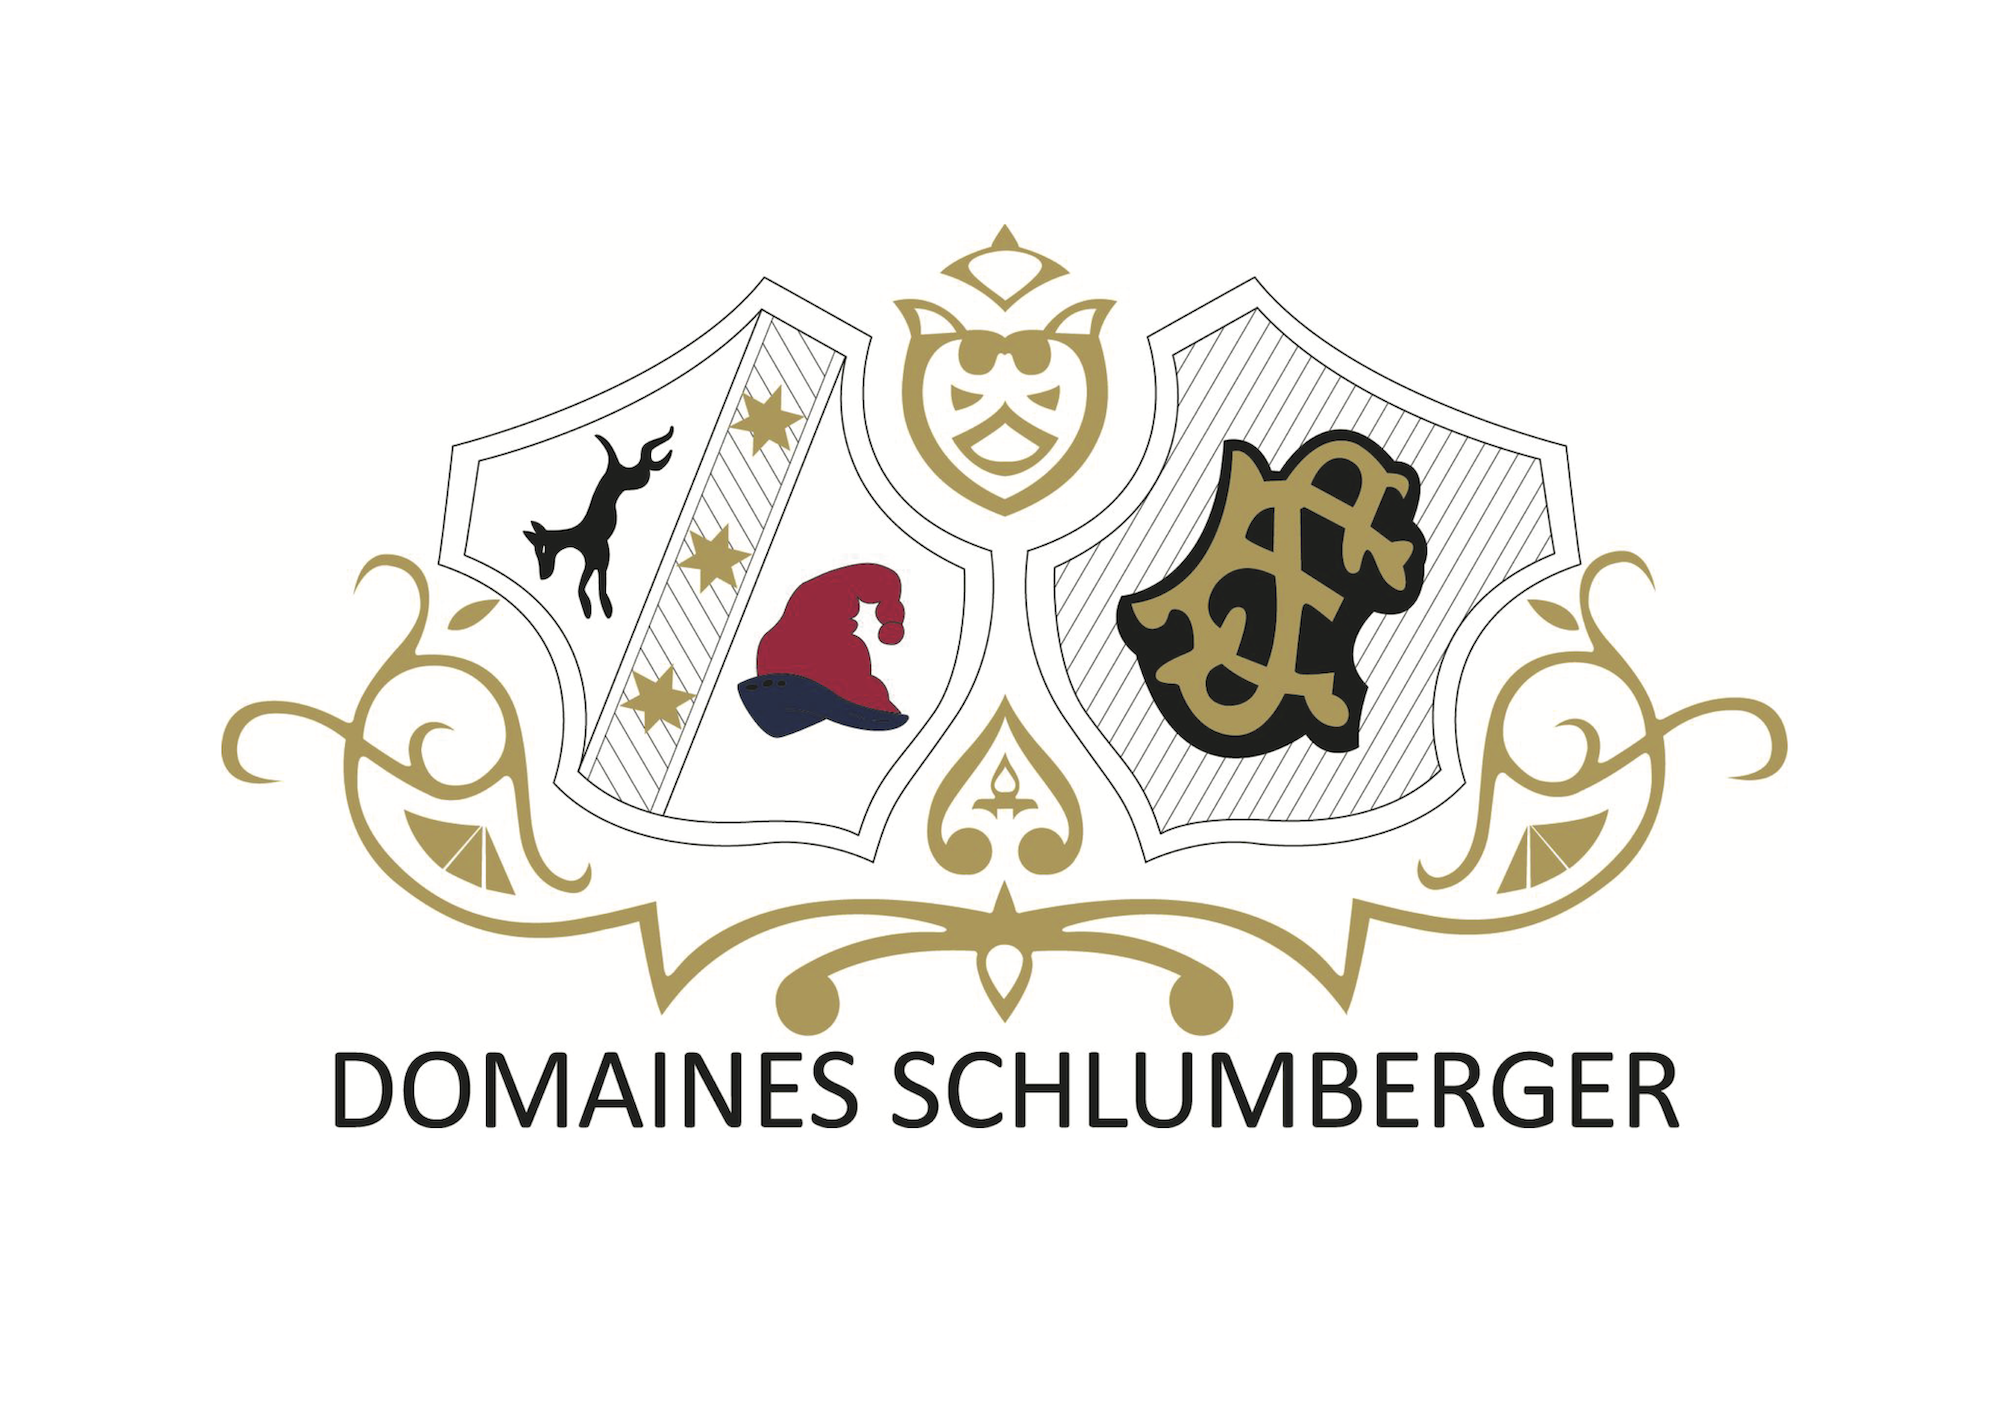 Domaines Schlumberger